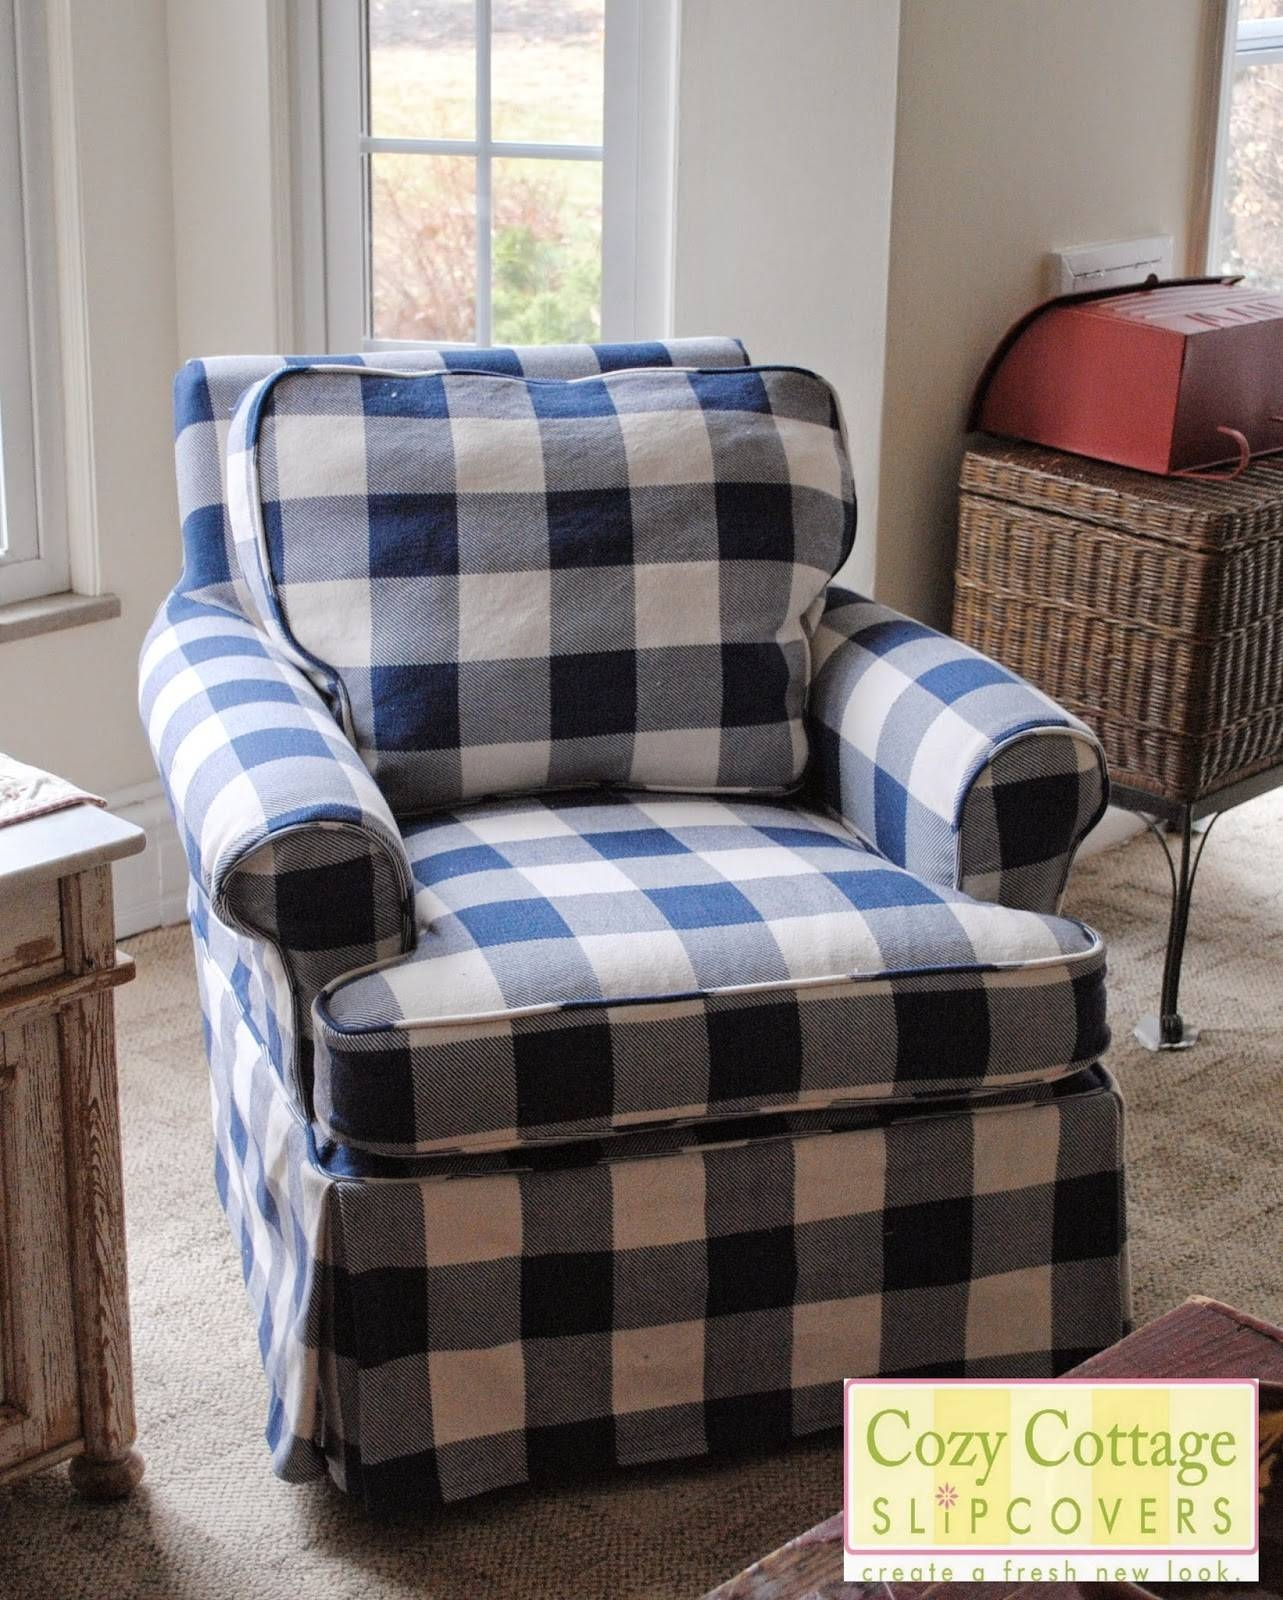 Cozy Cottage Slipcovers: Blue And White Buffalo Check Slipcovers with Buffalo Check Sofas (Image 13 of 15)